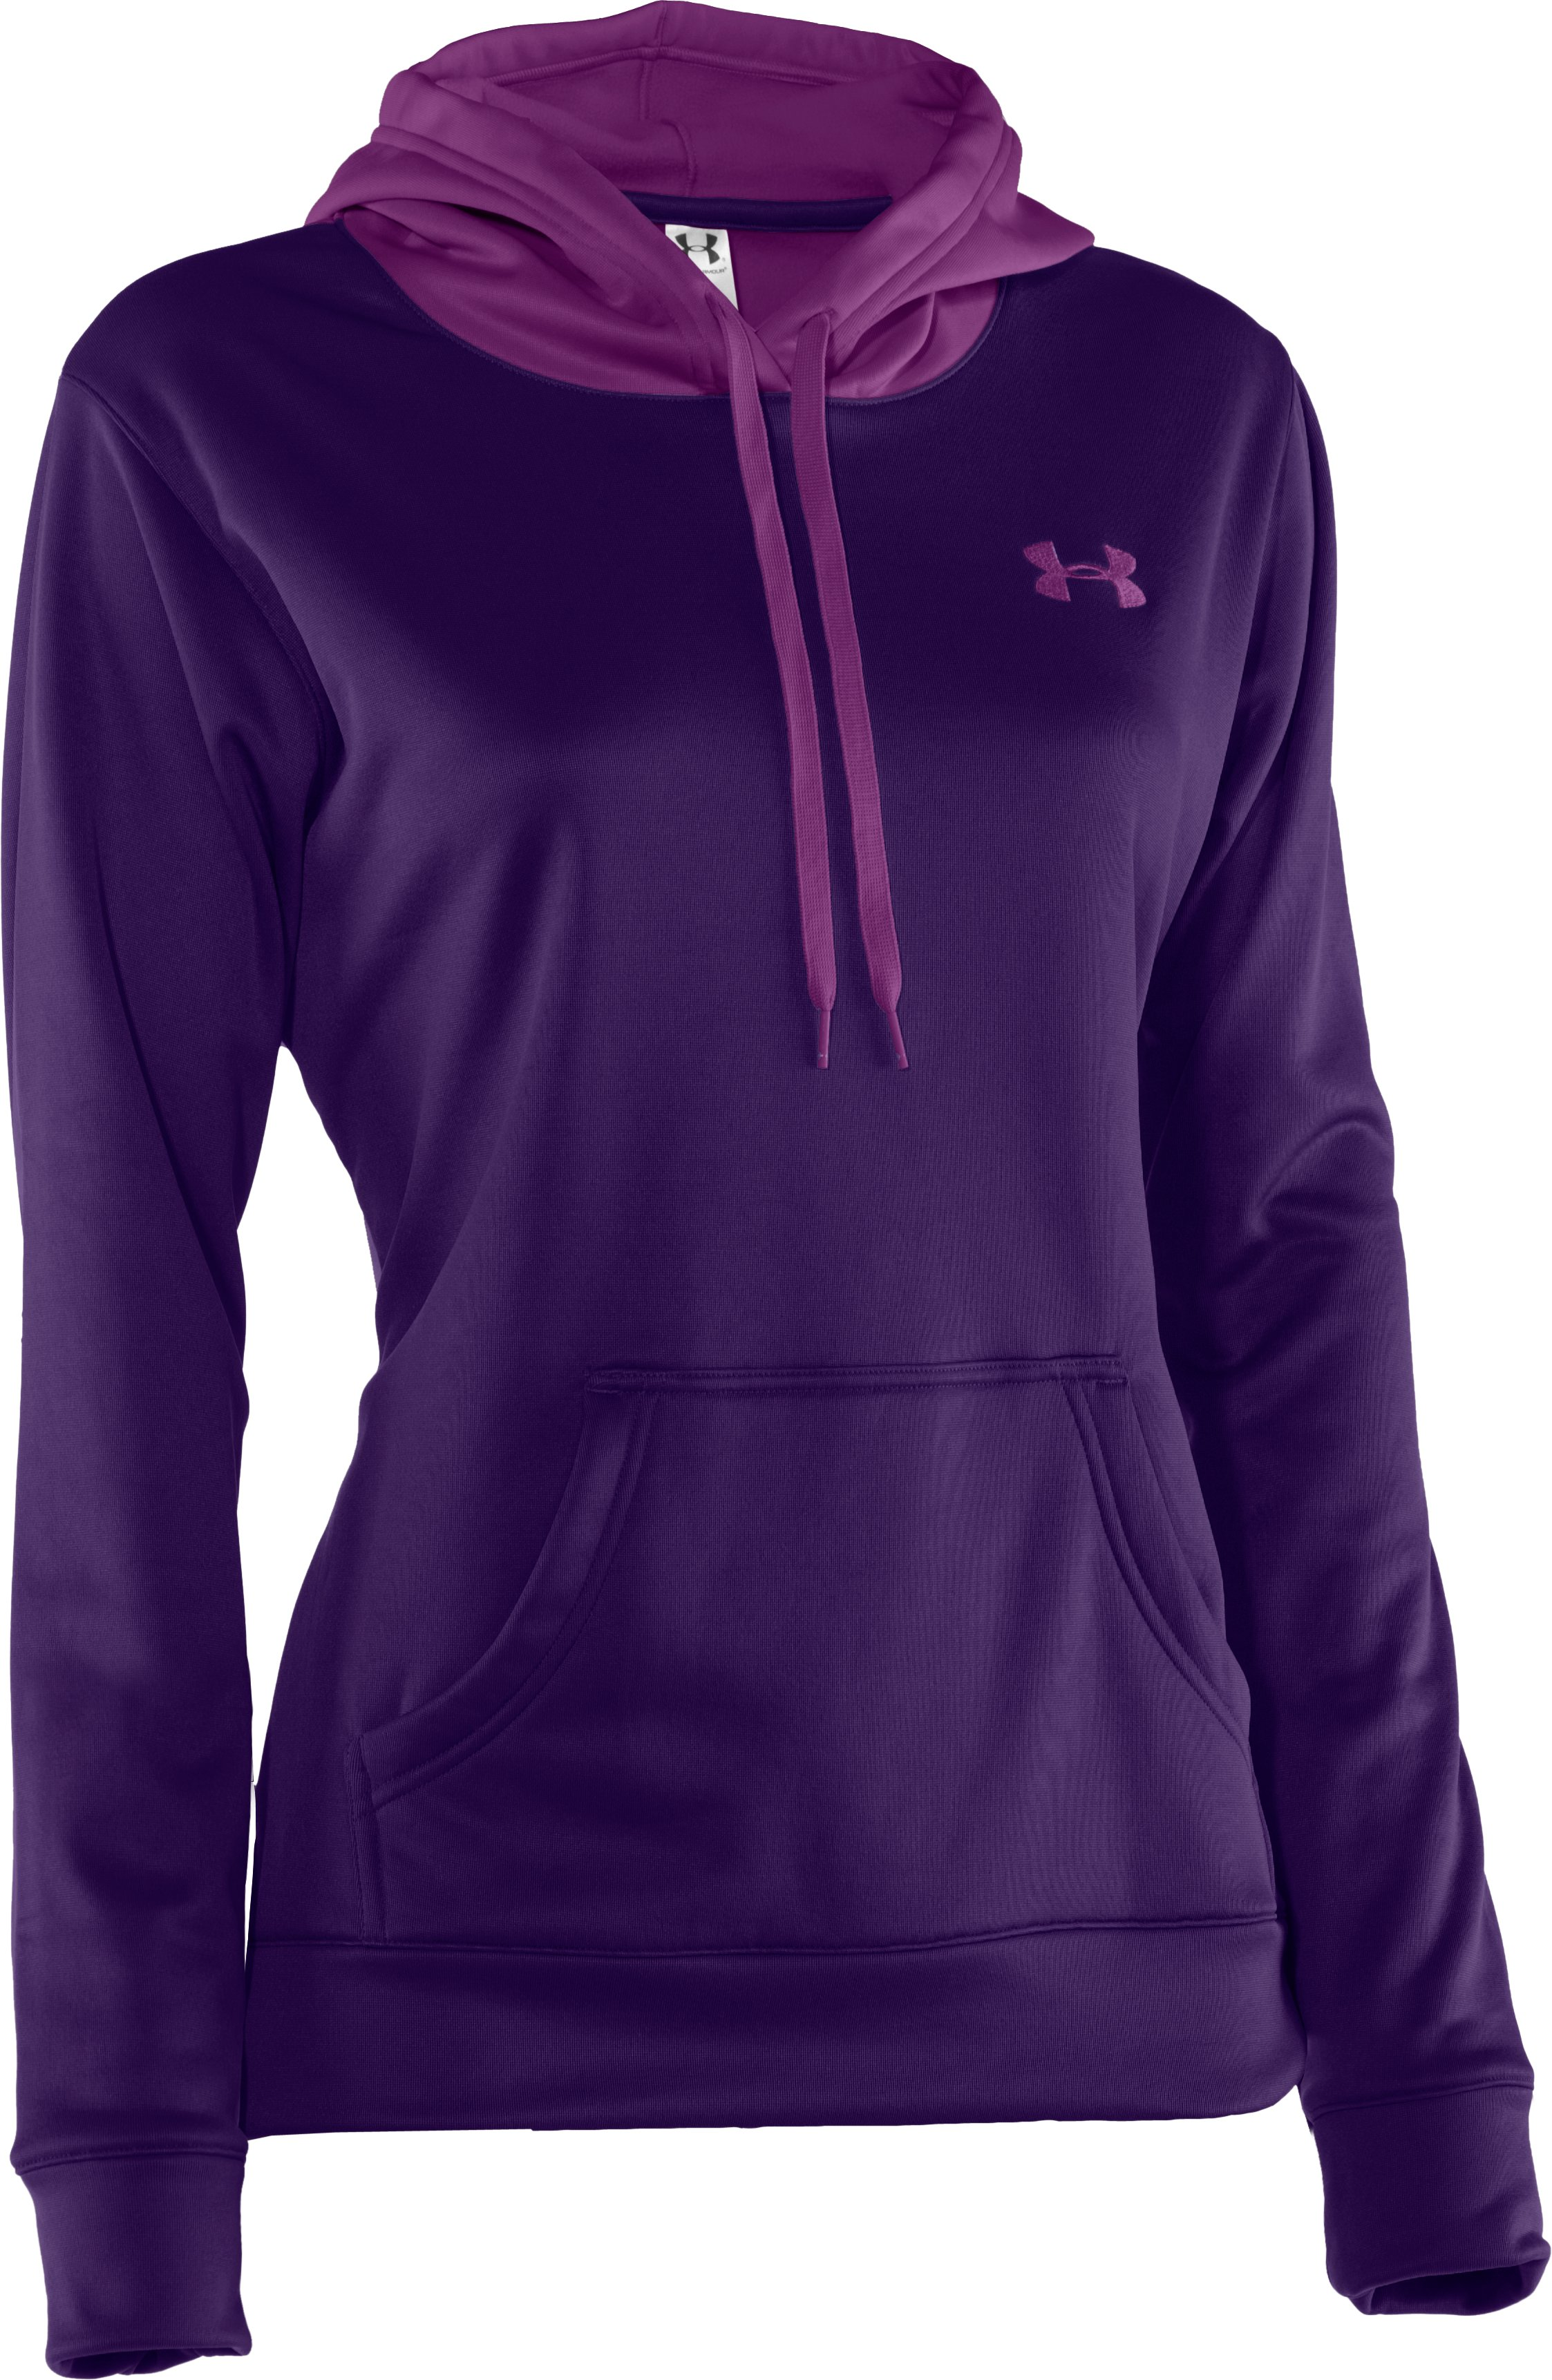 Women's Armour® Fleece Divide Hoodie, Zone,